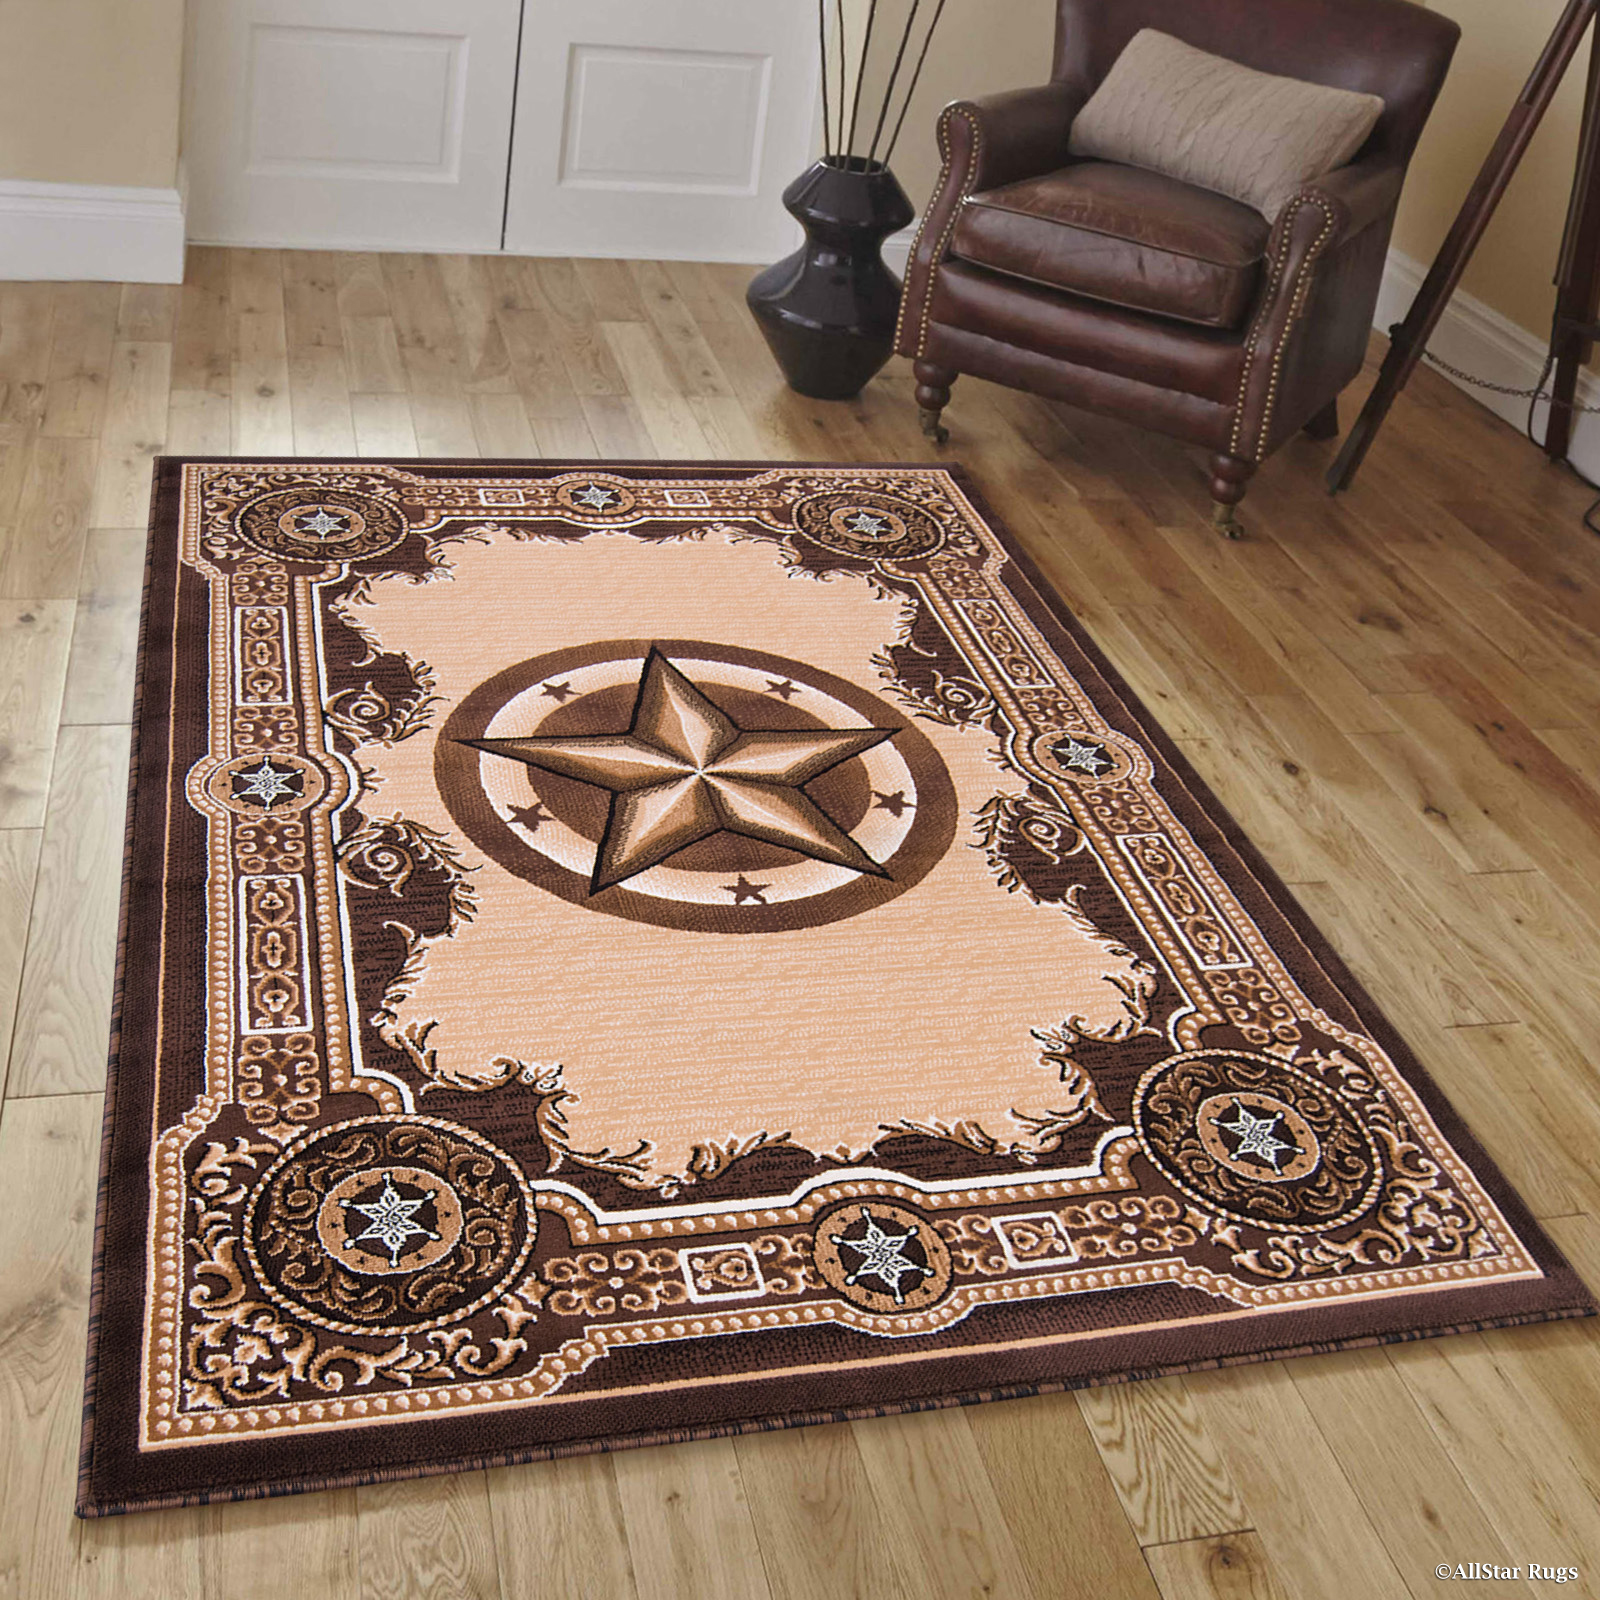 High Quality Texas Star, Cowboy, Western, Woven Area Rug, Drop-Stitch Weave Technique with Carve Effect (5'... by